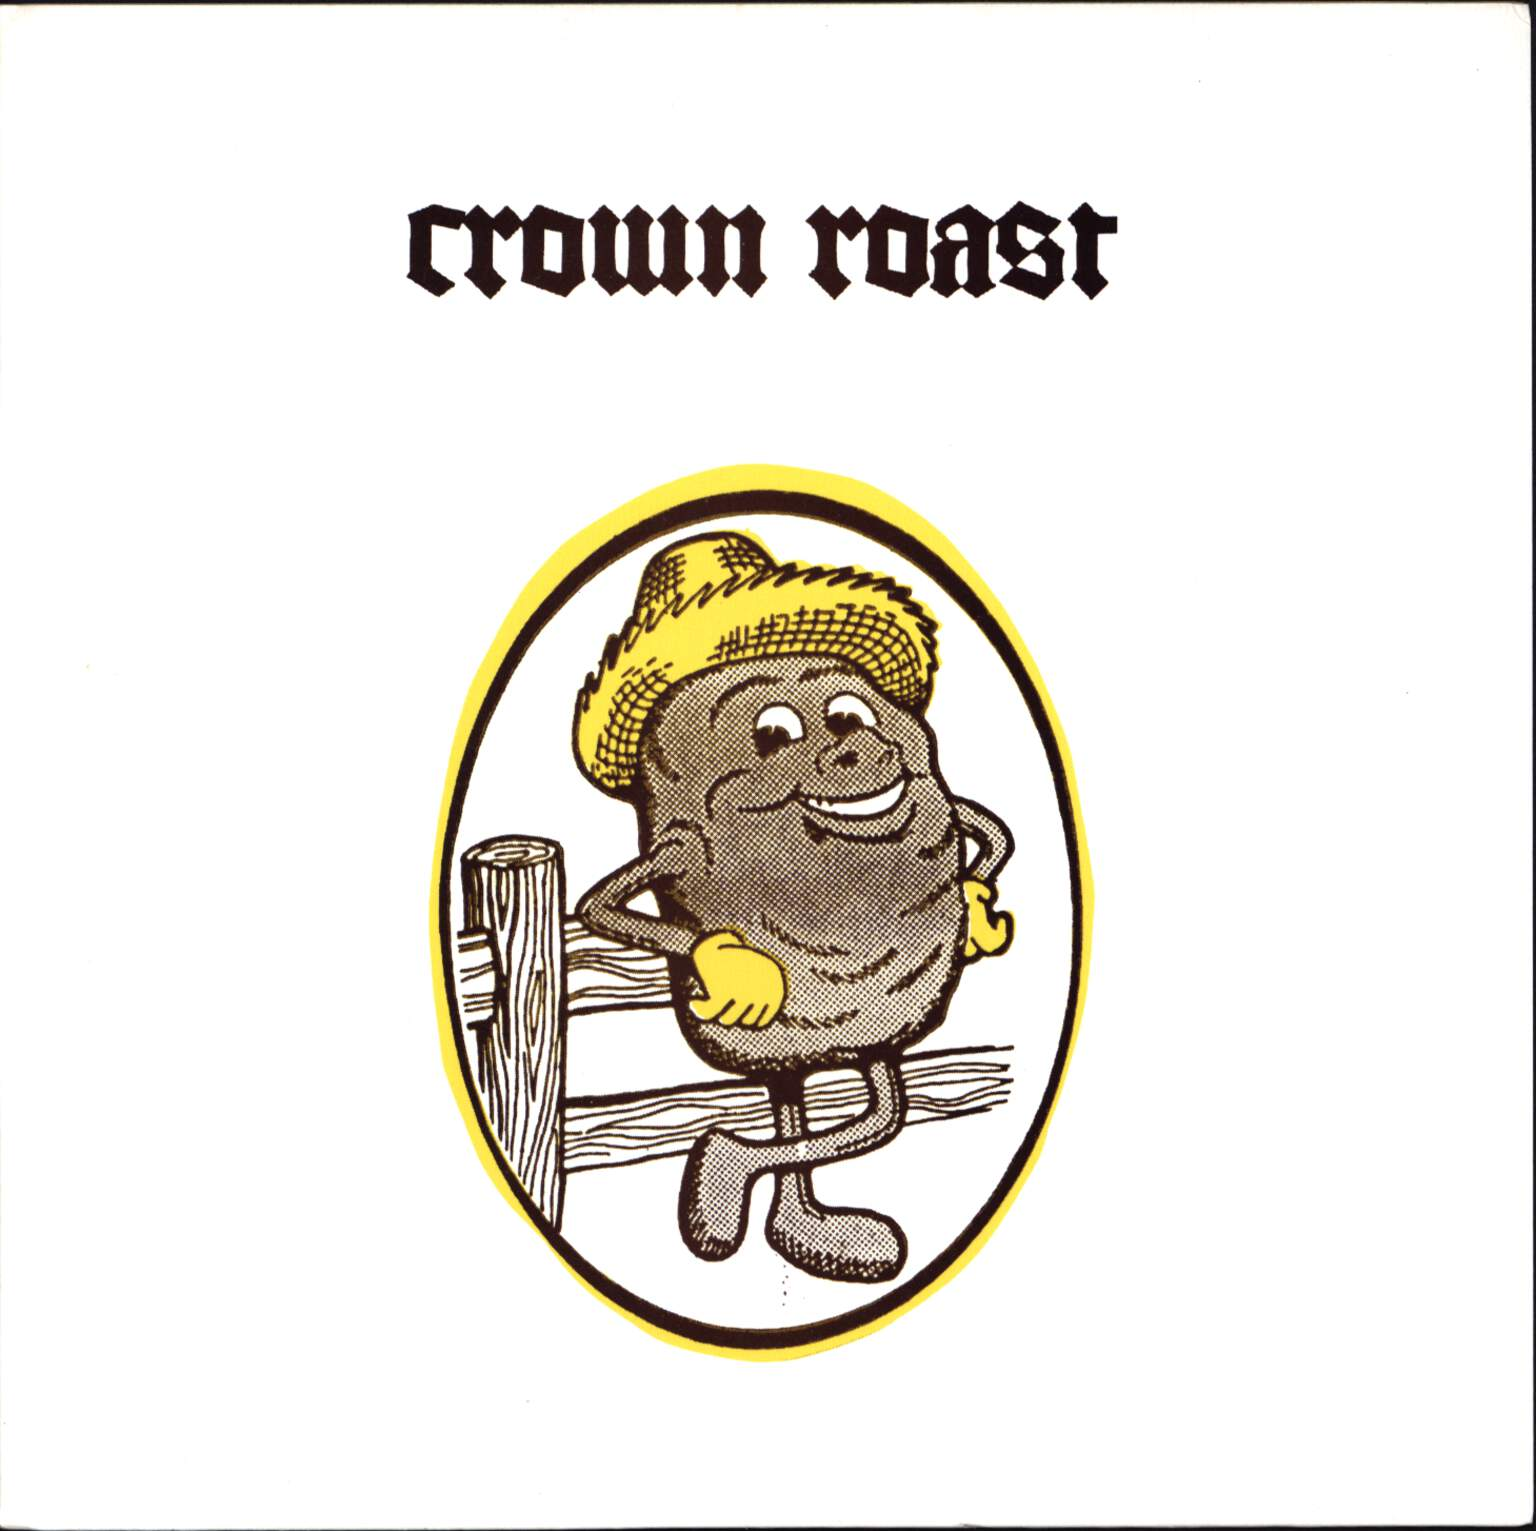 "Crown Roast: Three Course Meal, 7"" Single (Vinyl)"